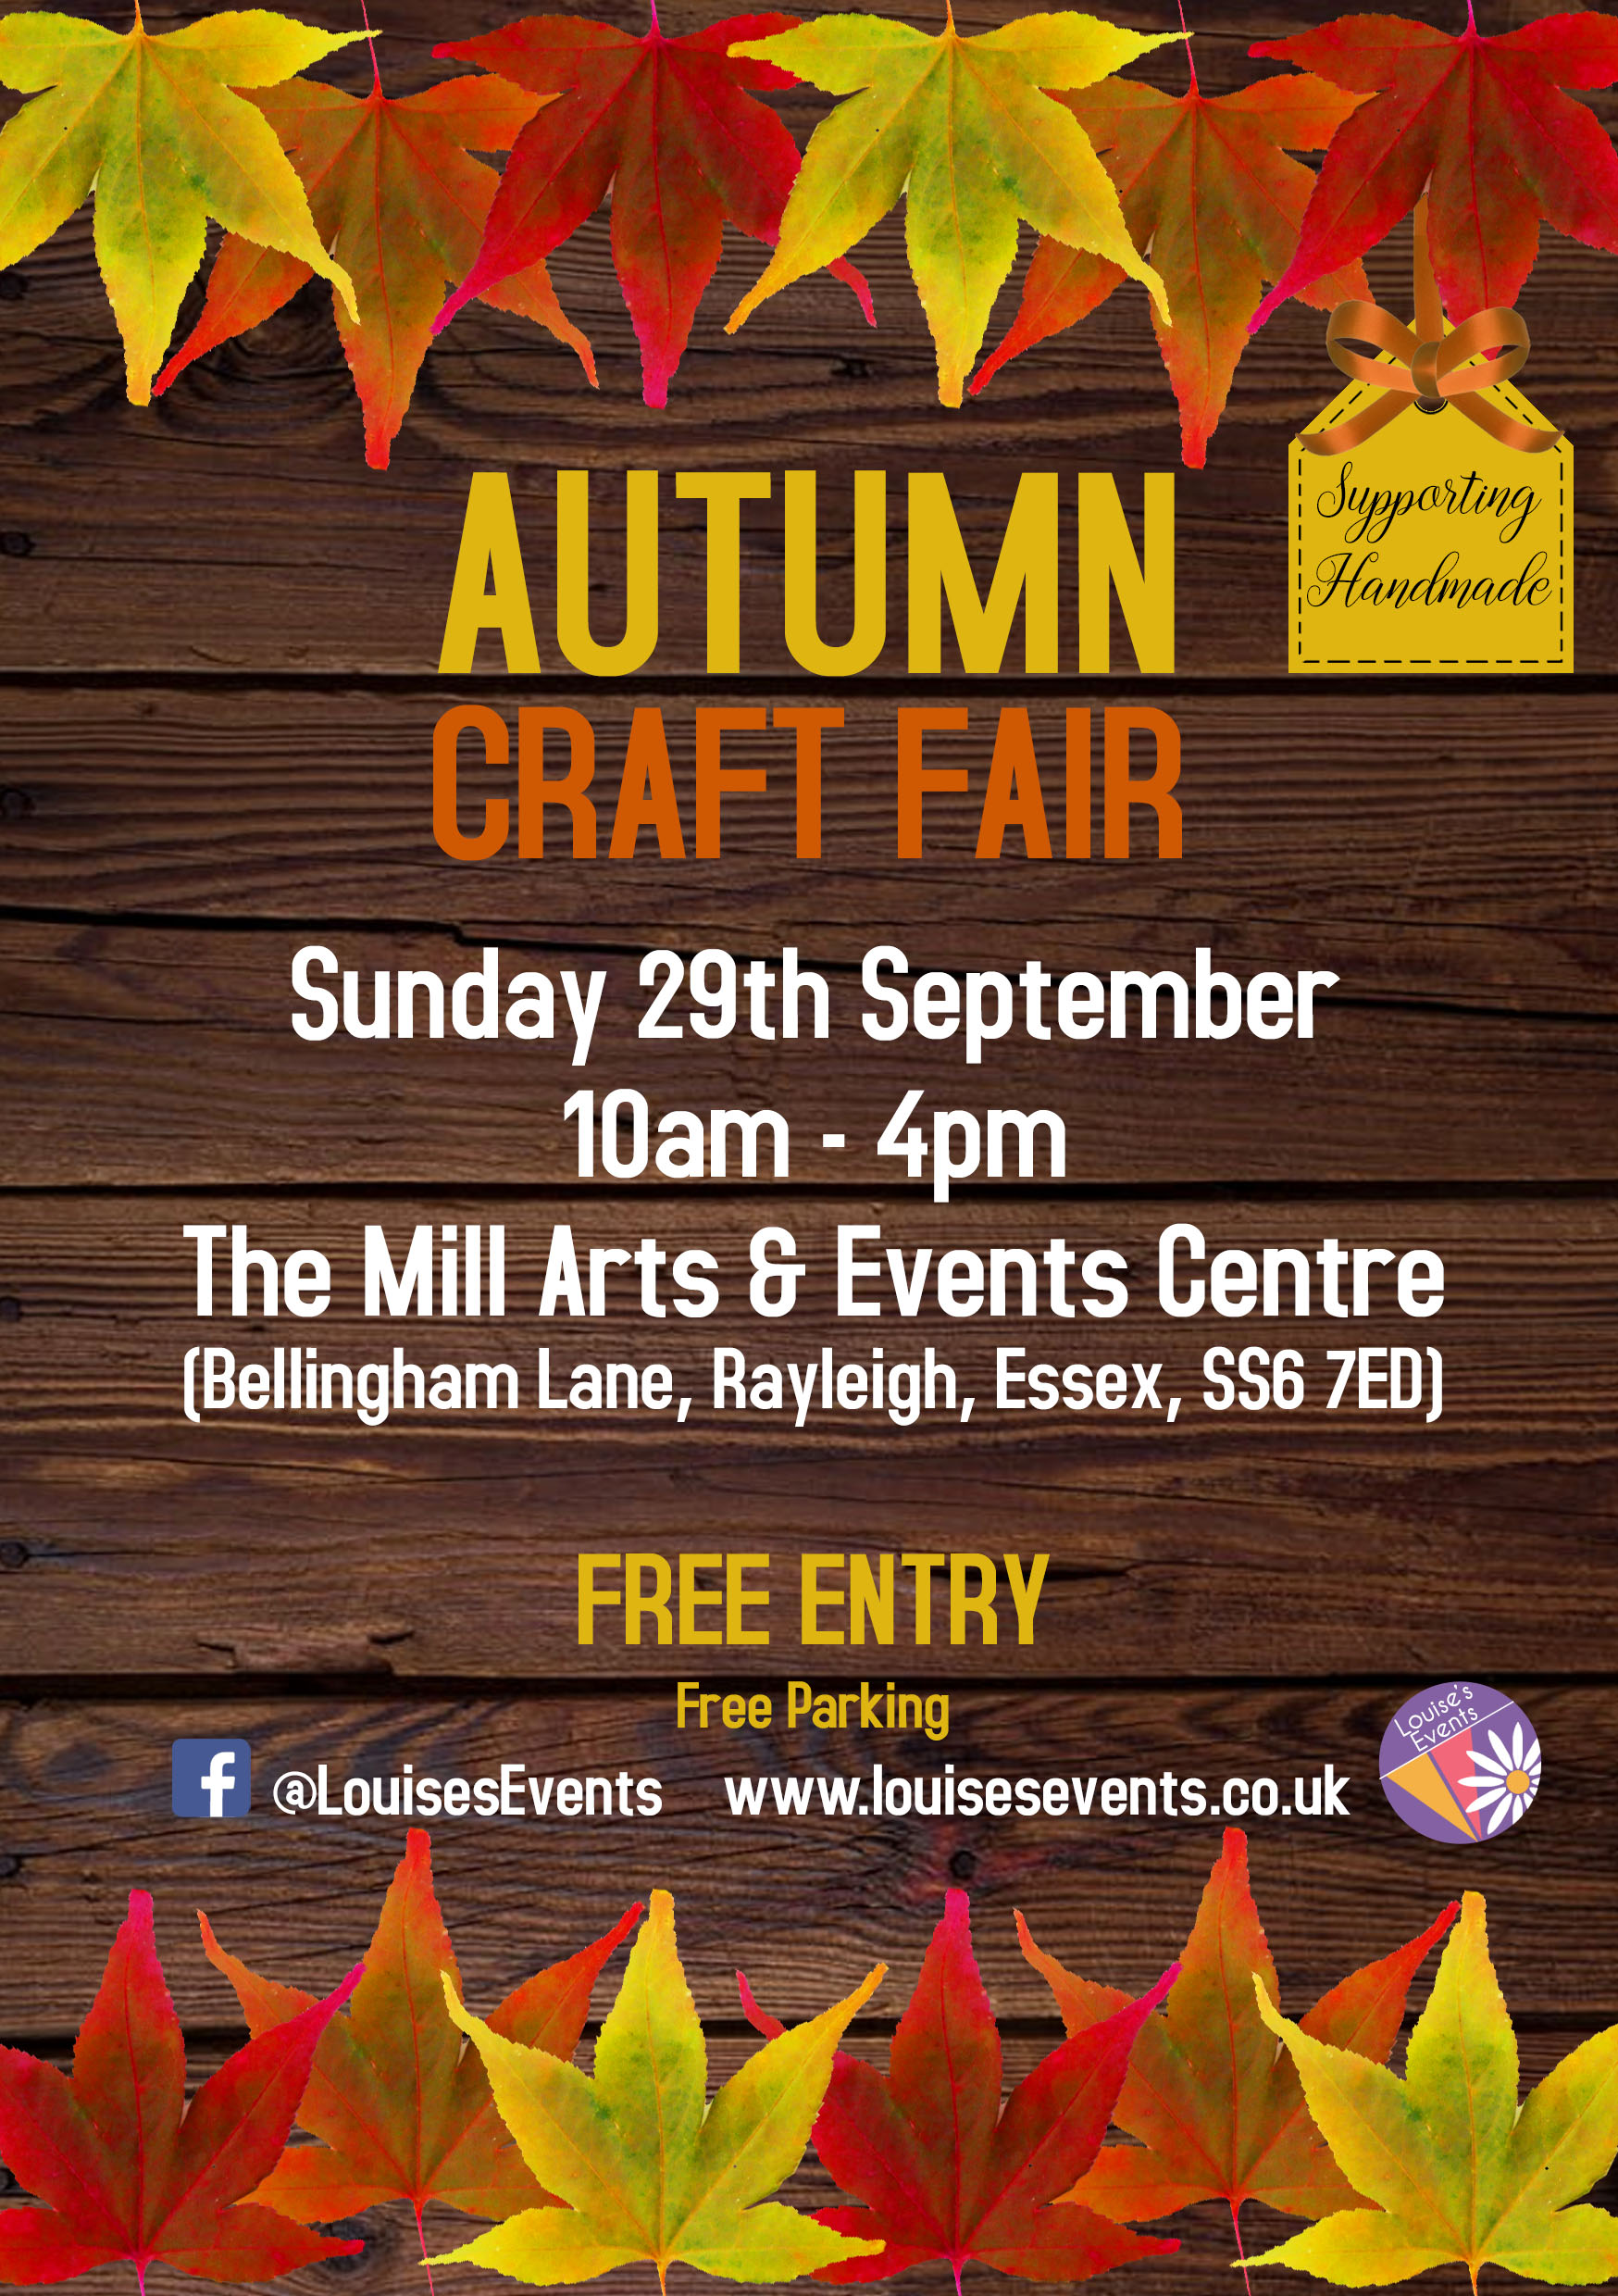 Autumn Craft Fair